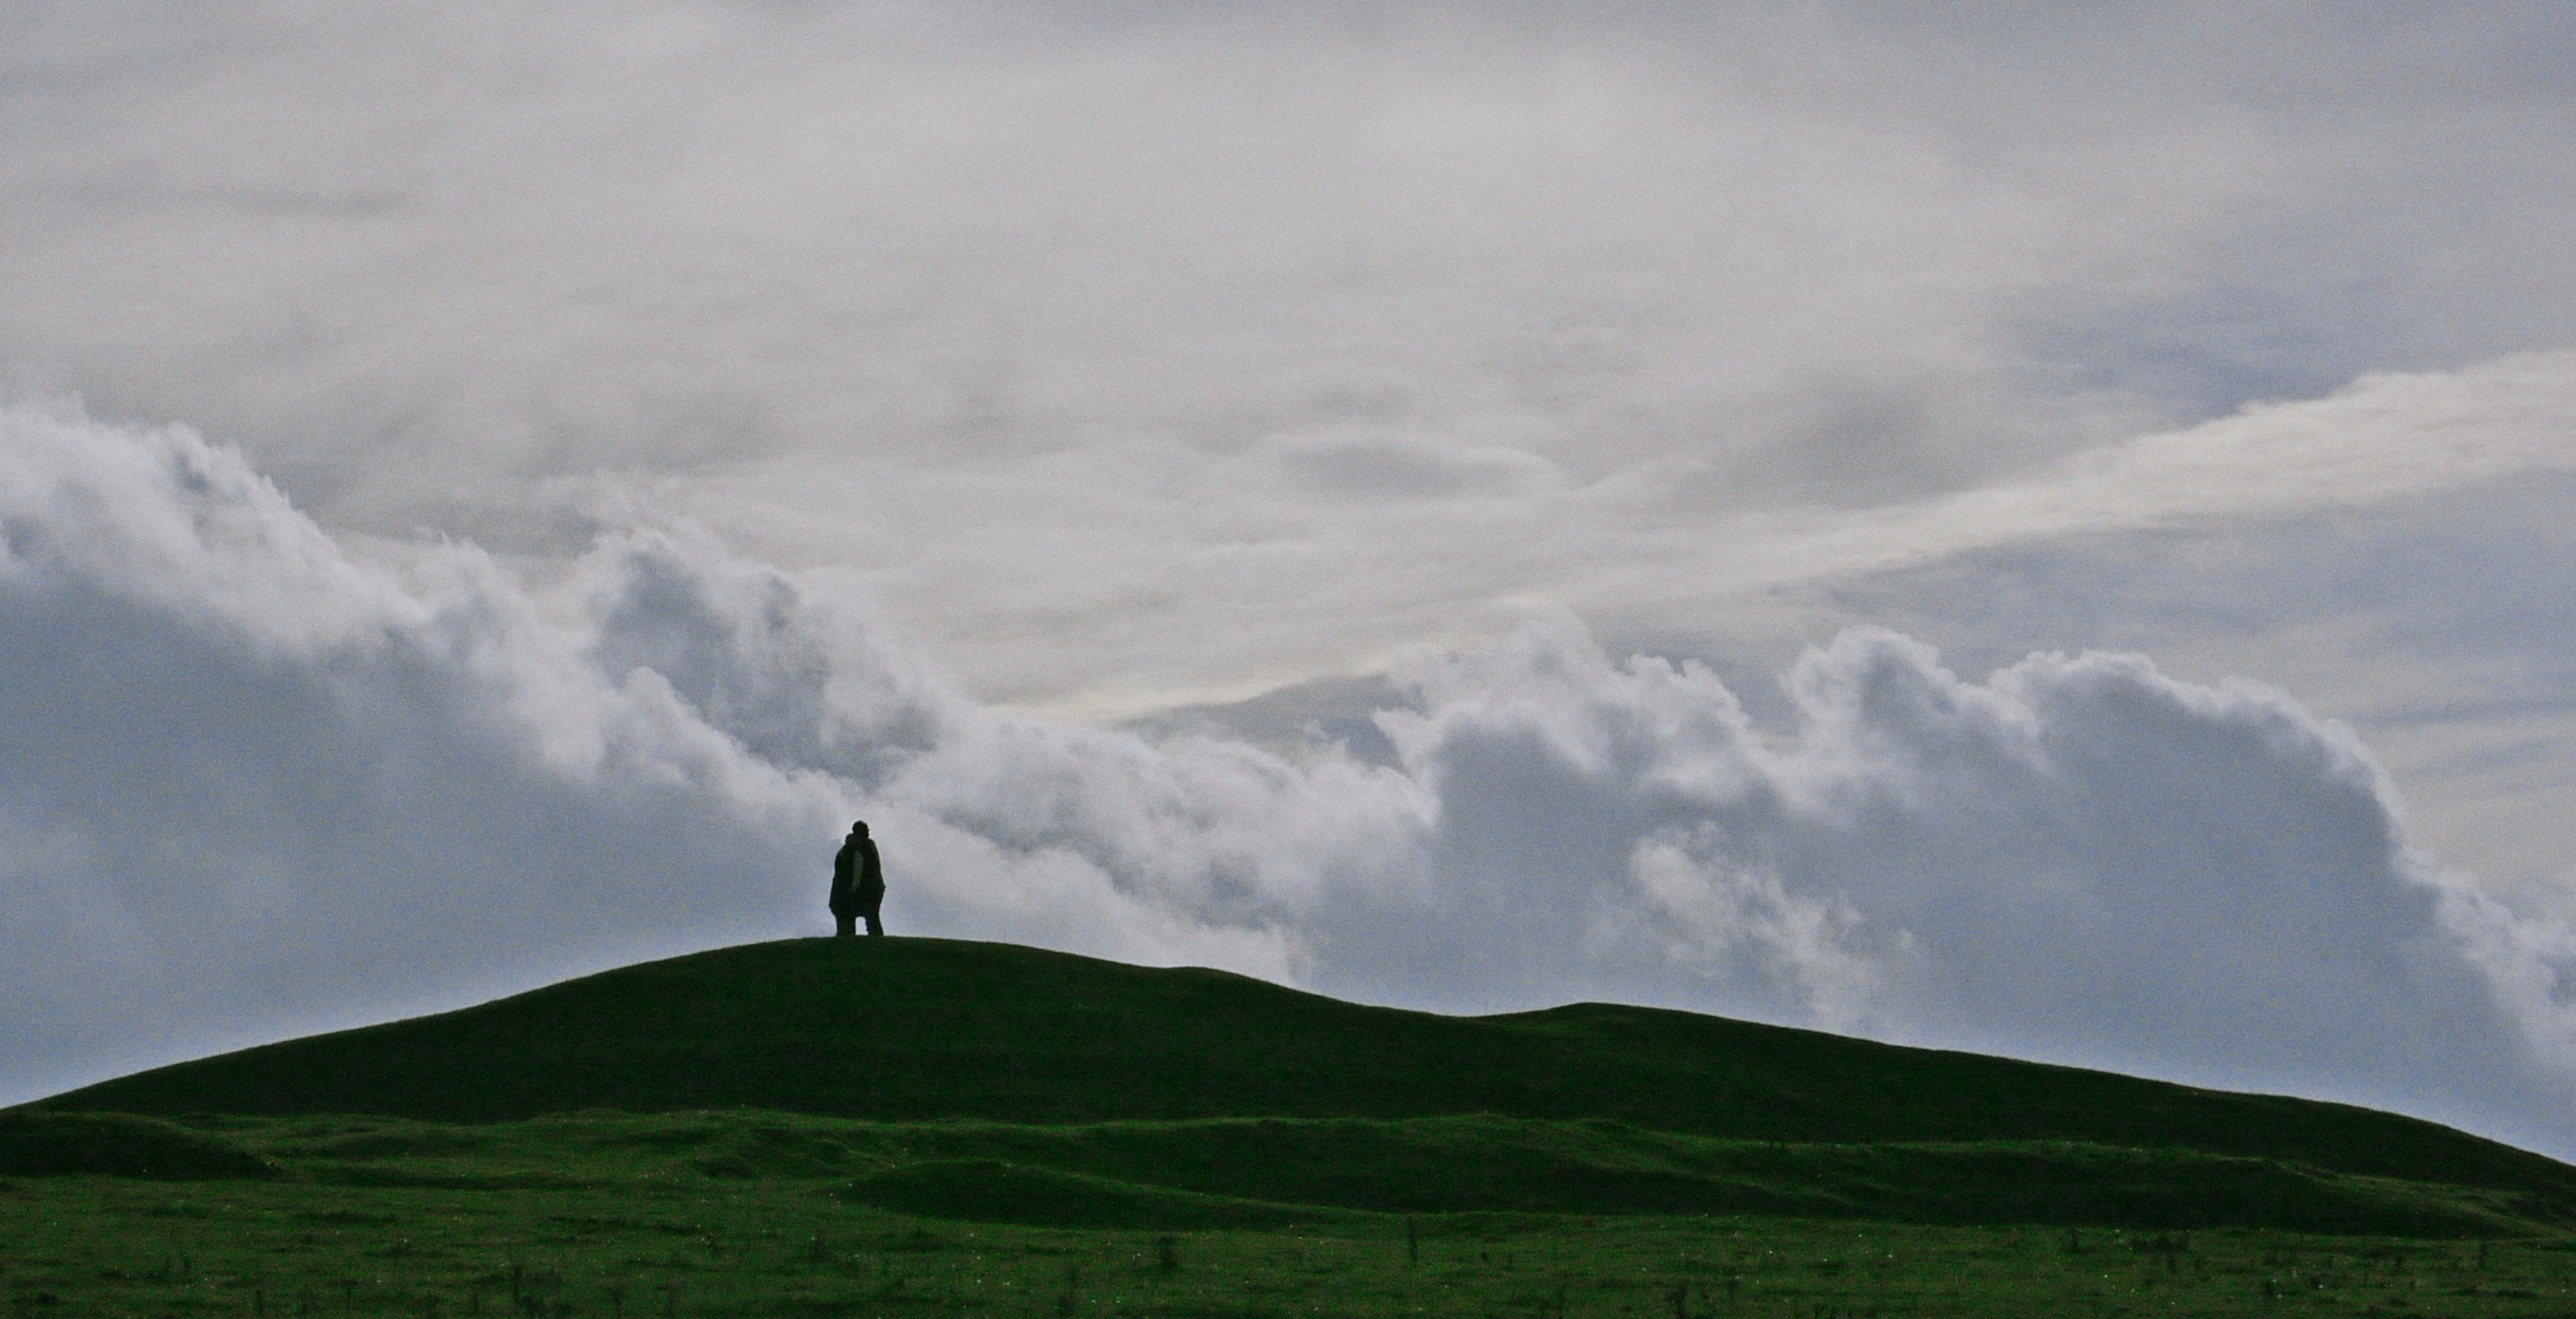 Free stock photo of clouds, dramatic sky, silhouette